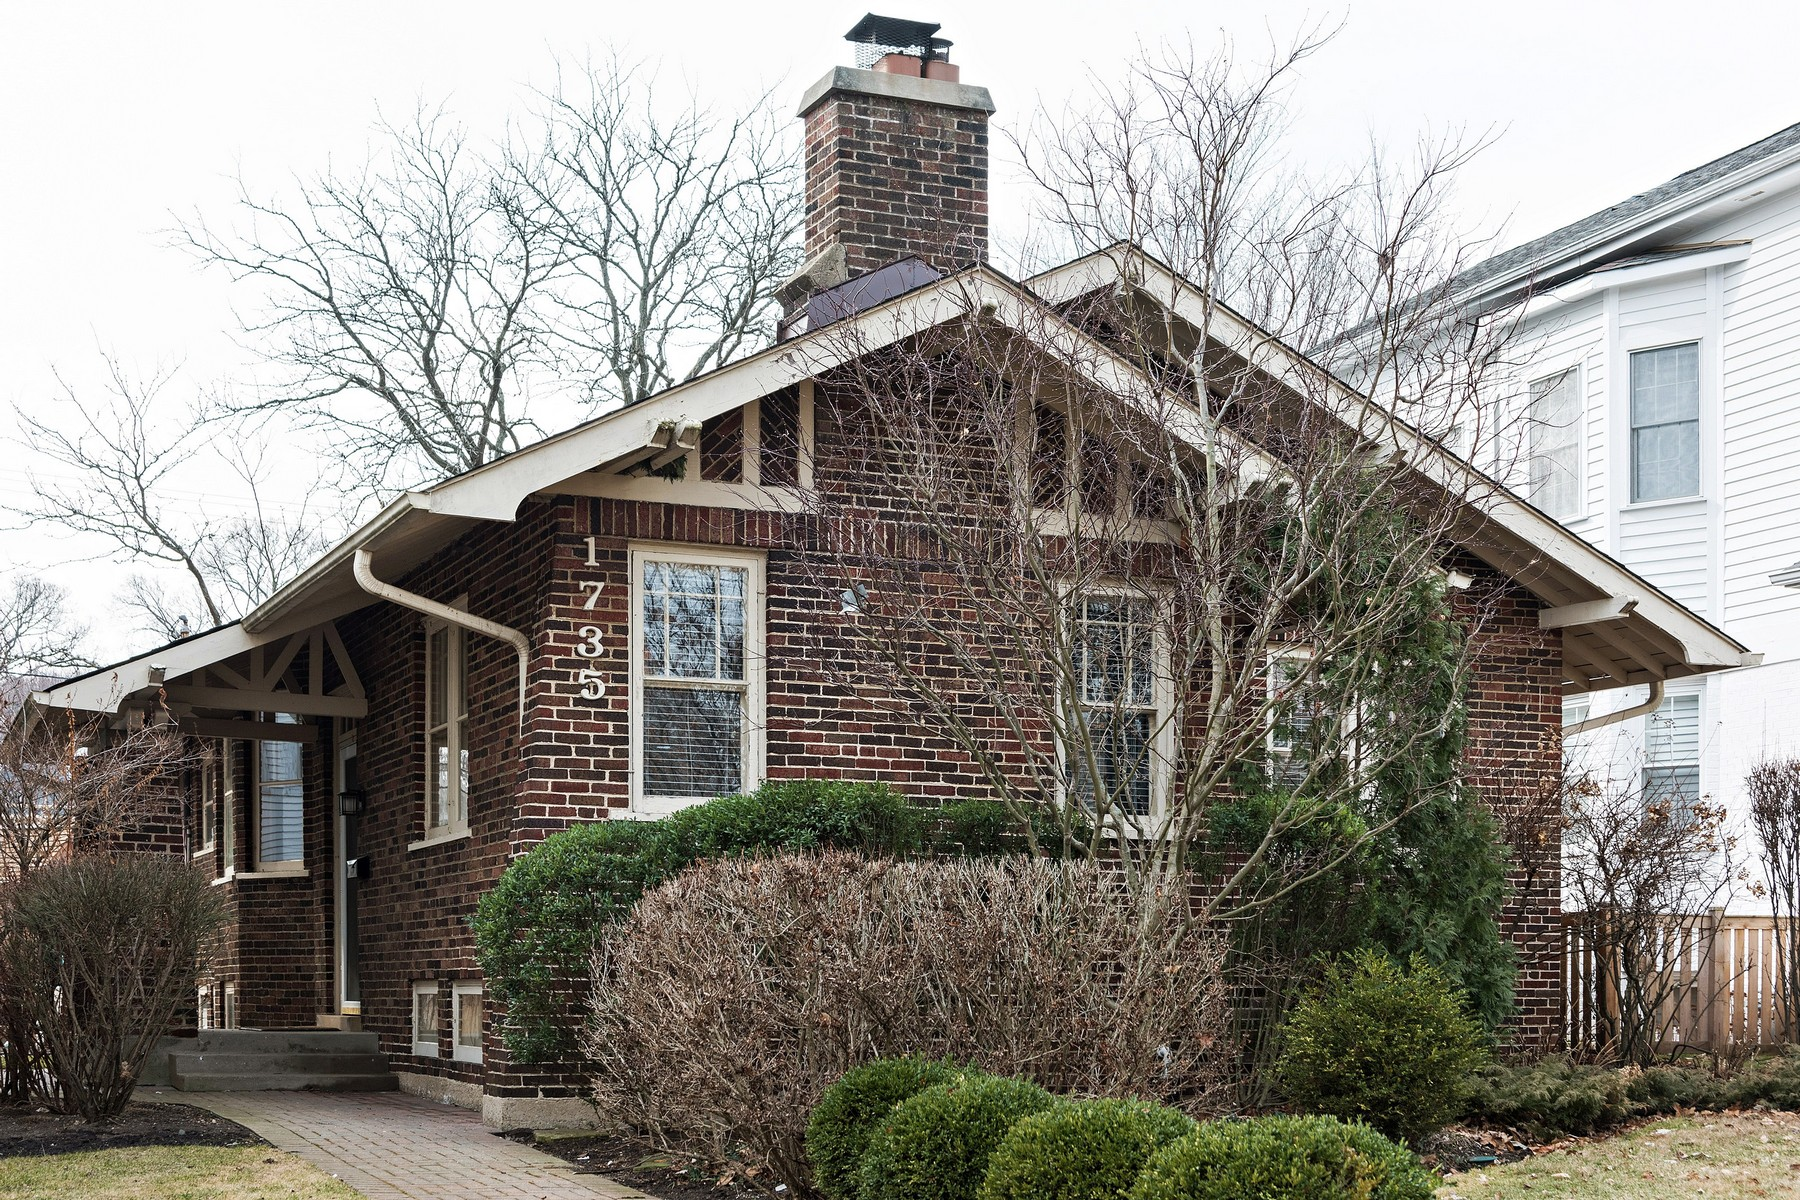 Single Family Home for Sale at Brick Bungalow 1735 Washington Ave Wilmette, Illinois, 60091 United States